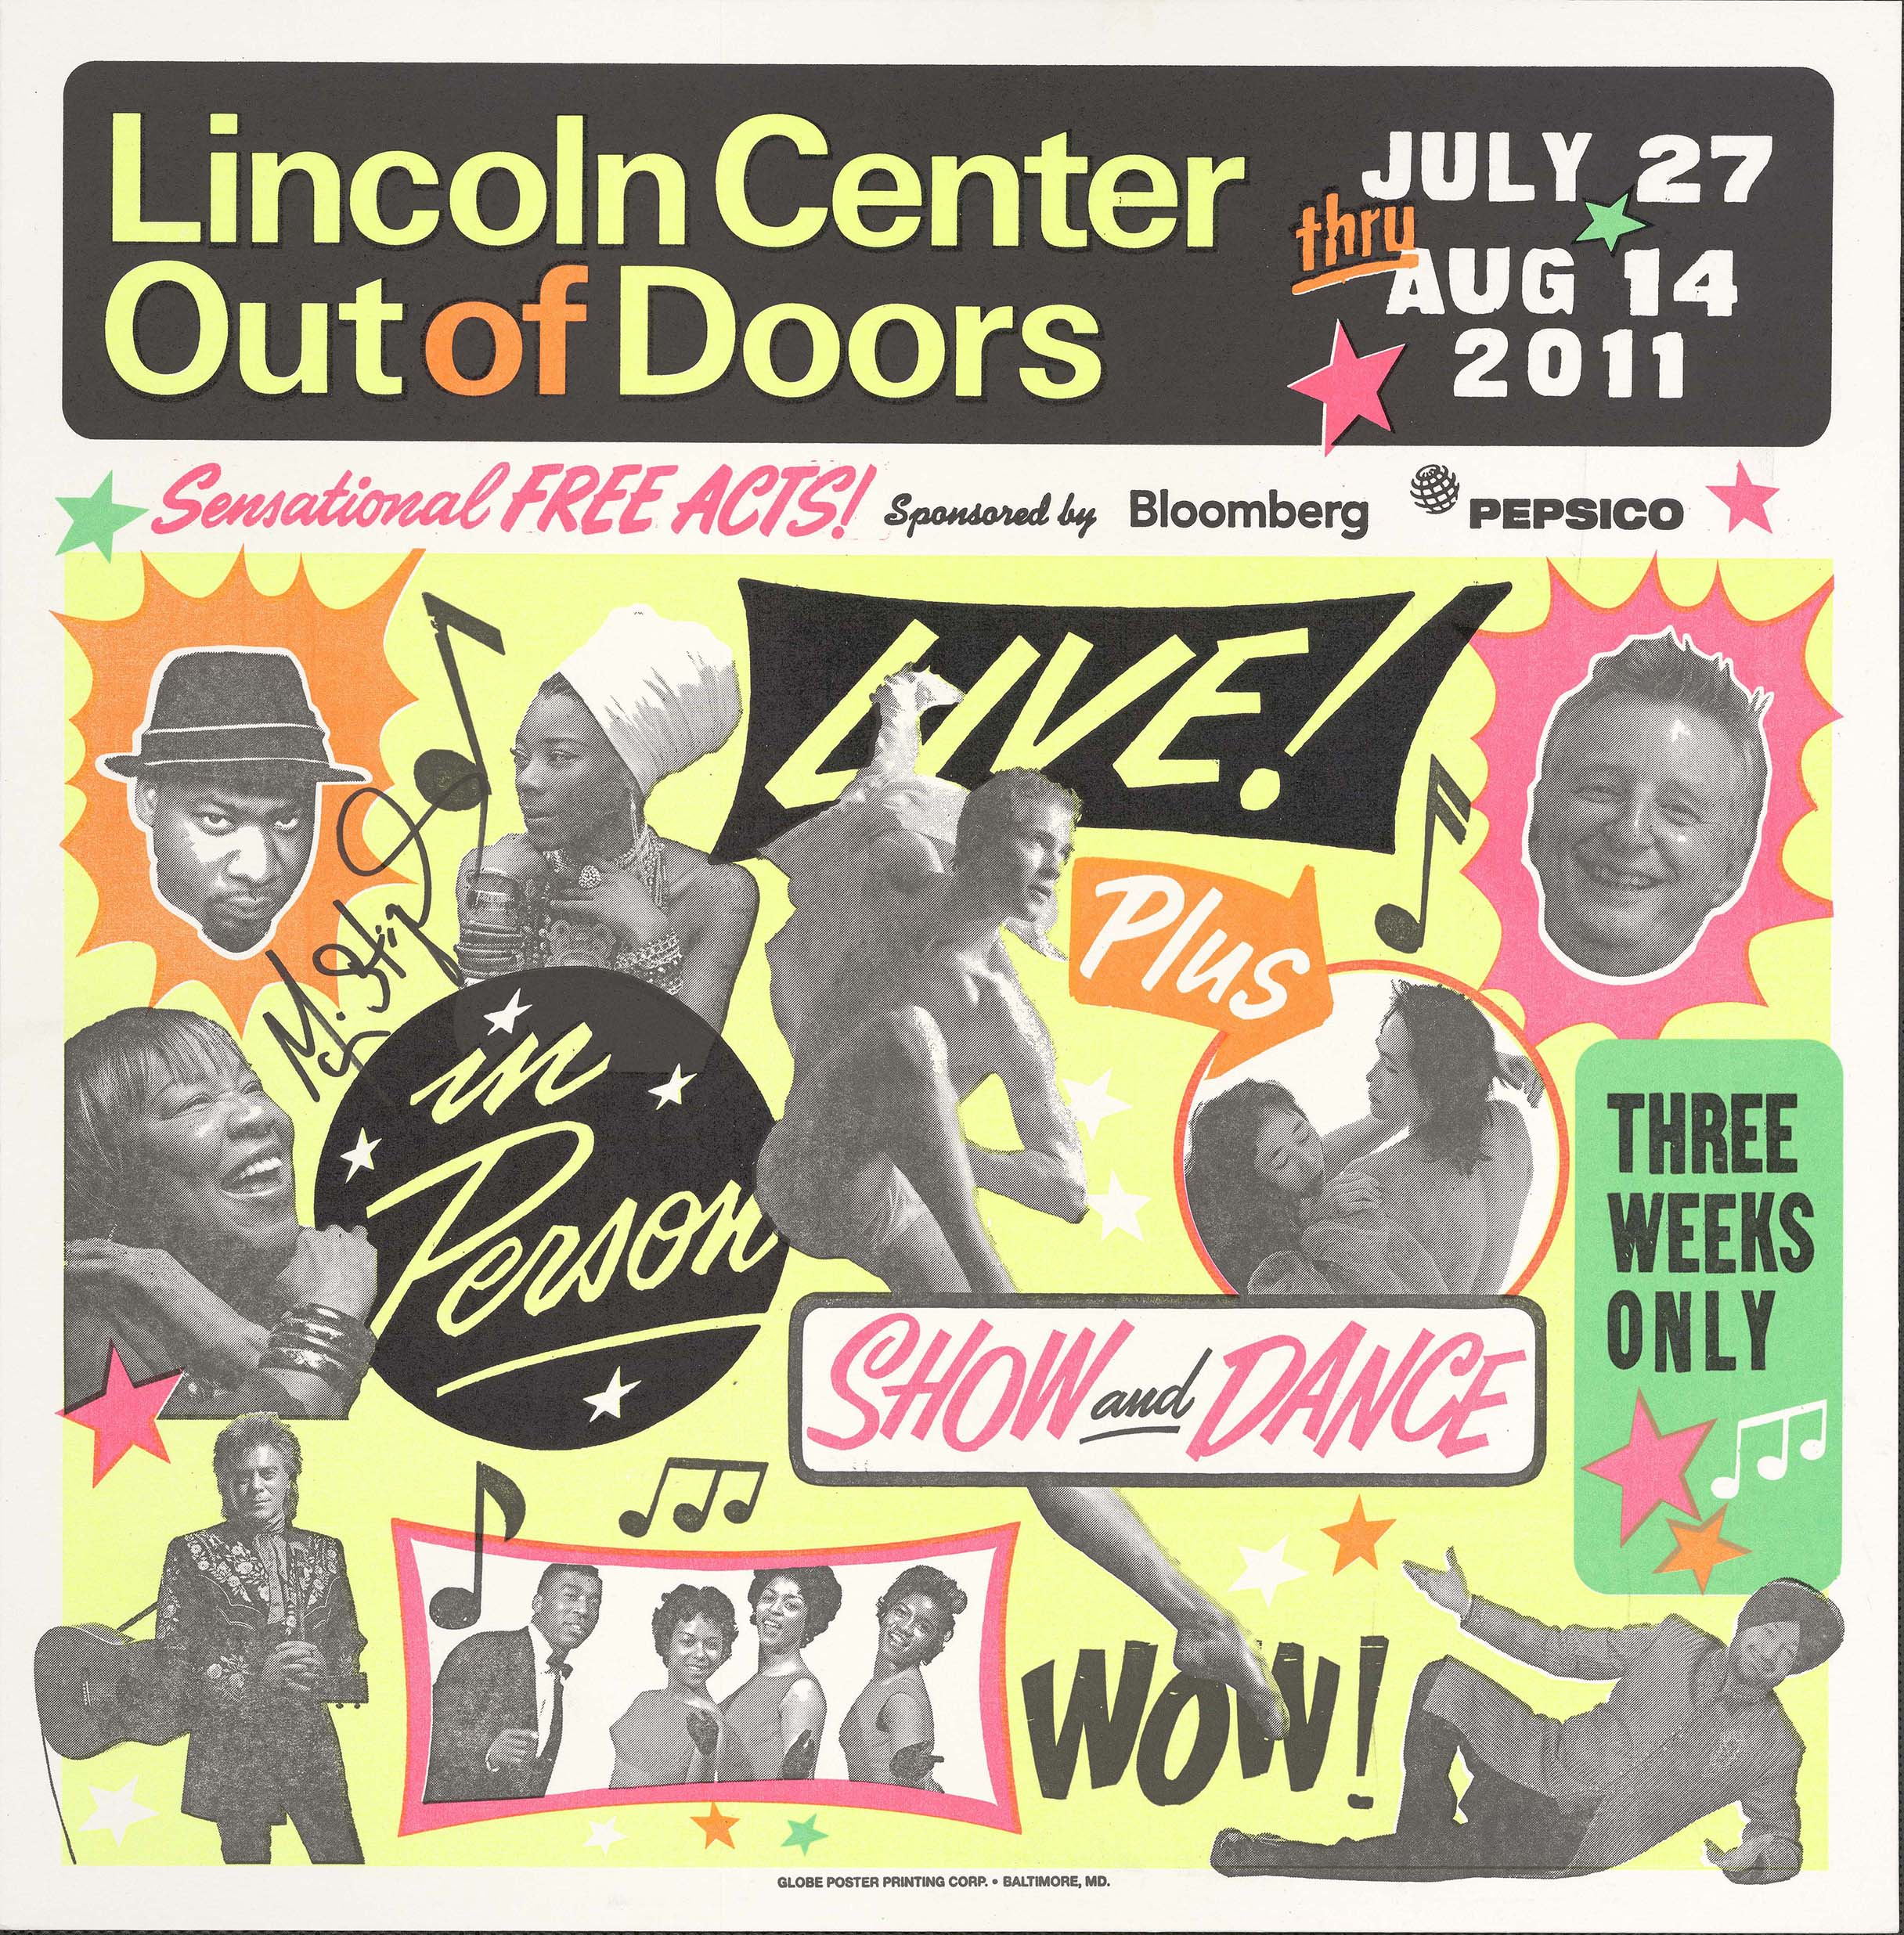 Lincoln Center Out of Doors concert poster